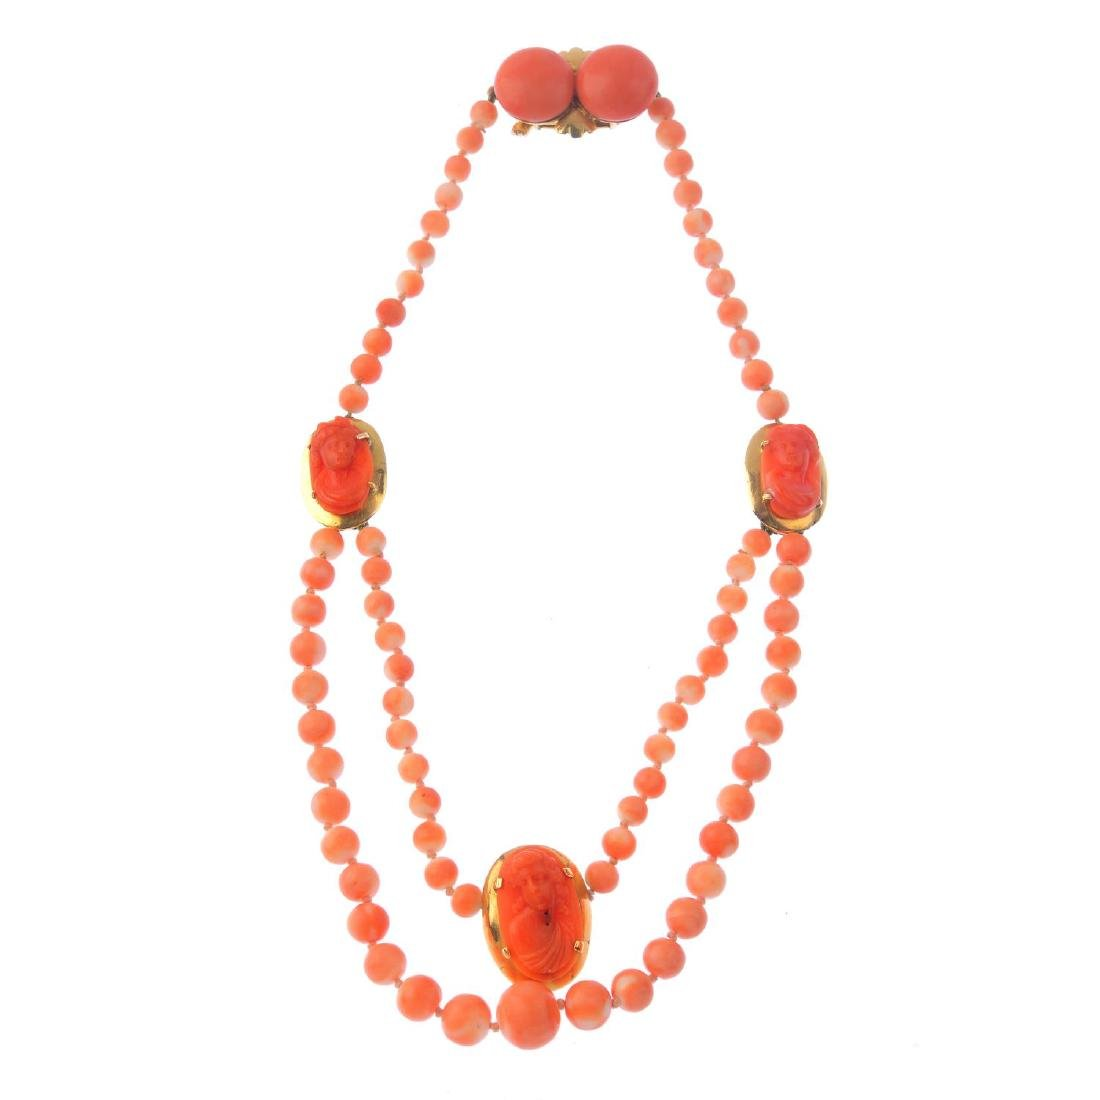 A coral necklace. The coral bead strand, with graduated